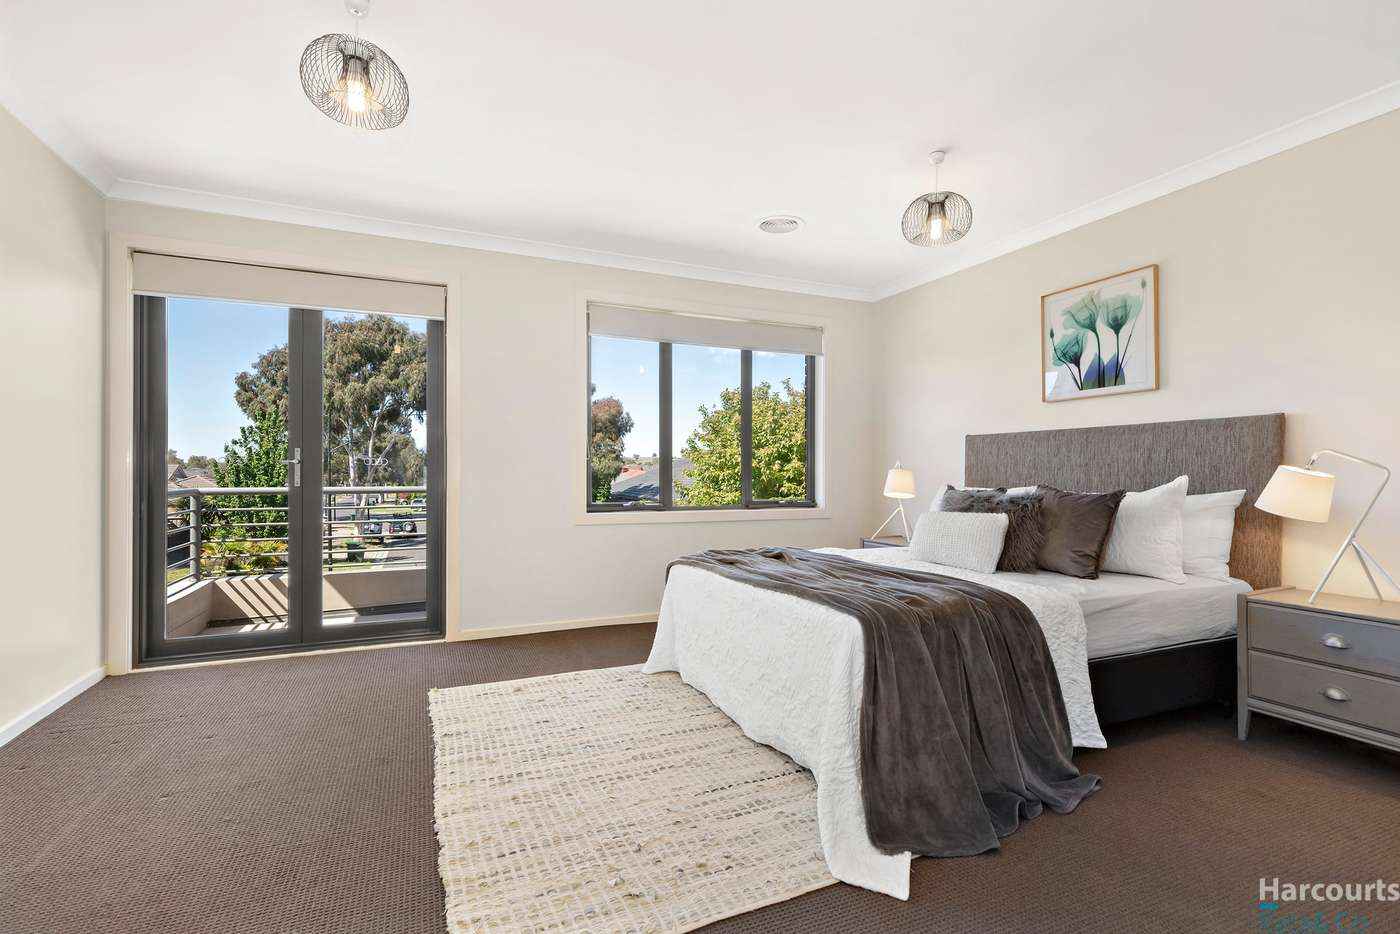 Sixth view of Homely house listing, 4 Morwell Way, Mernda VIC 3754